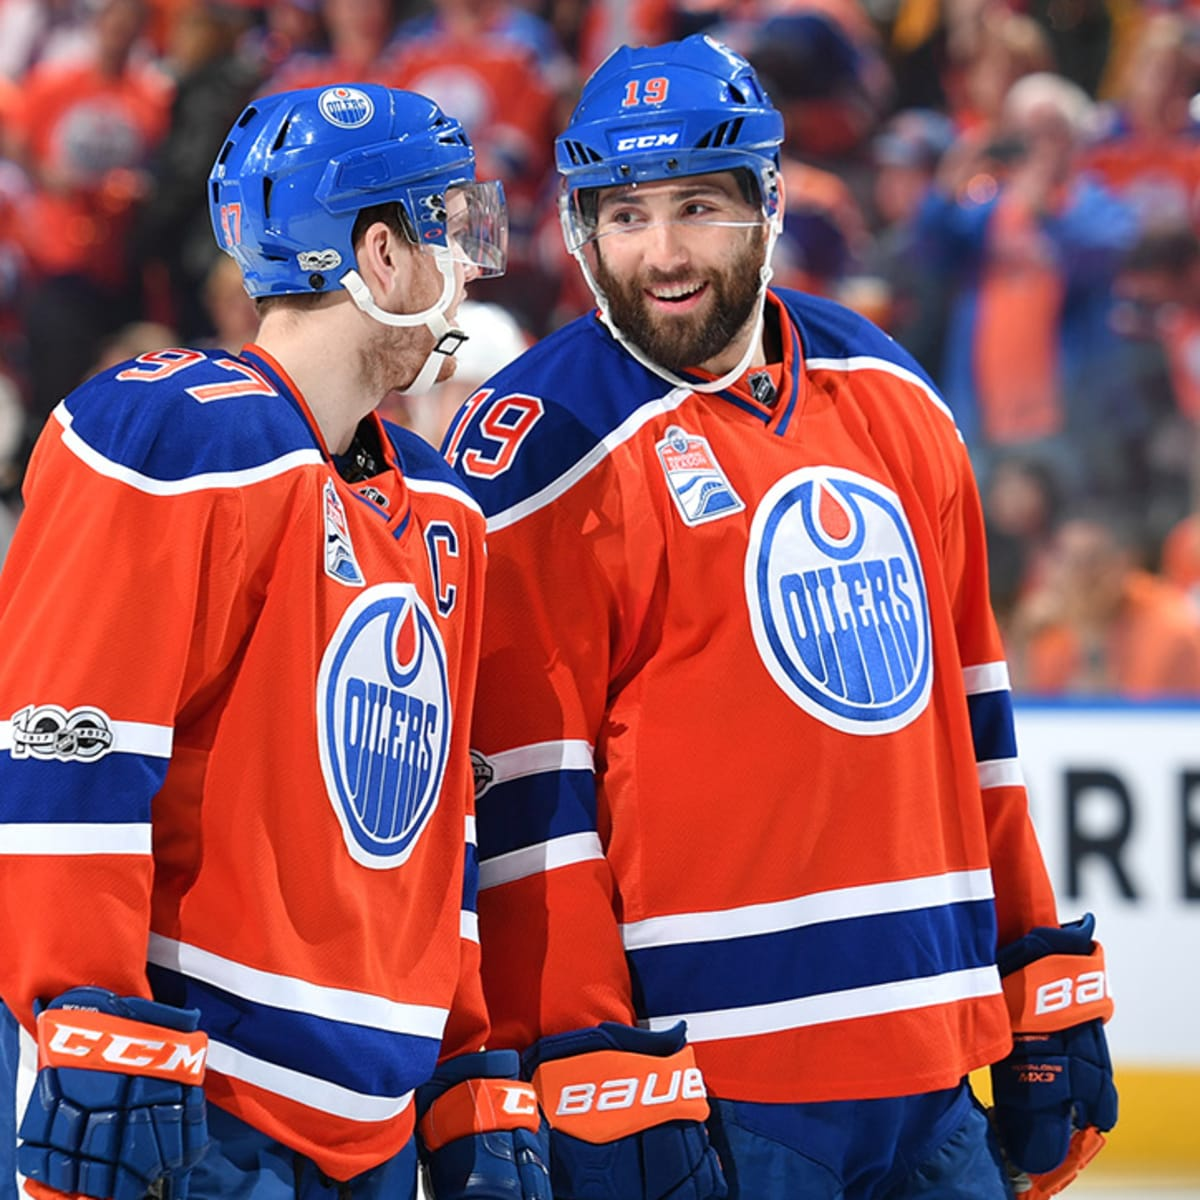 Watch Oilers Vs Ducks Online Game 7 Live Stream Tv Channel Sports Illustrated